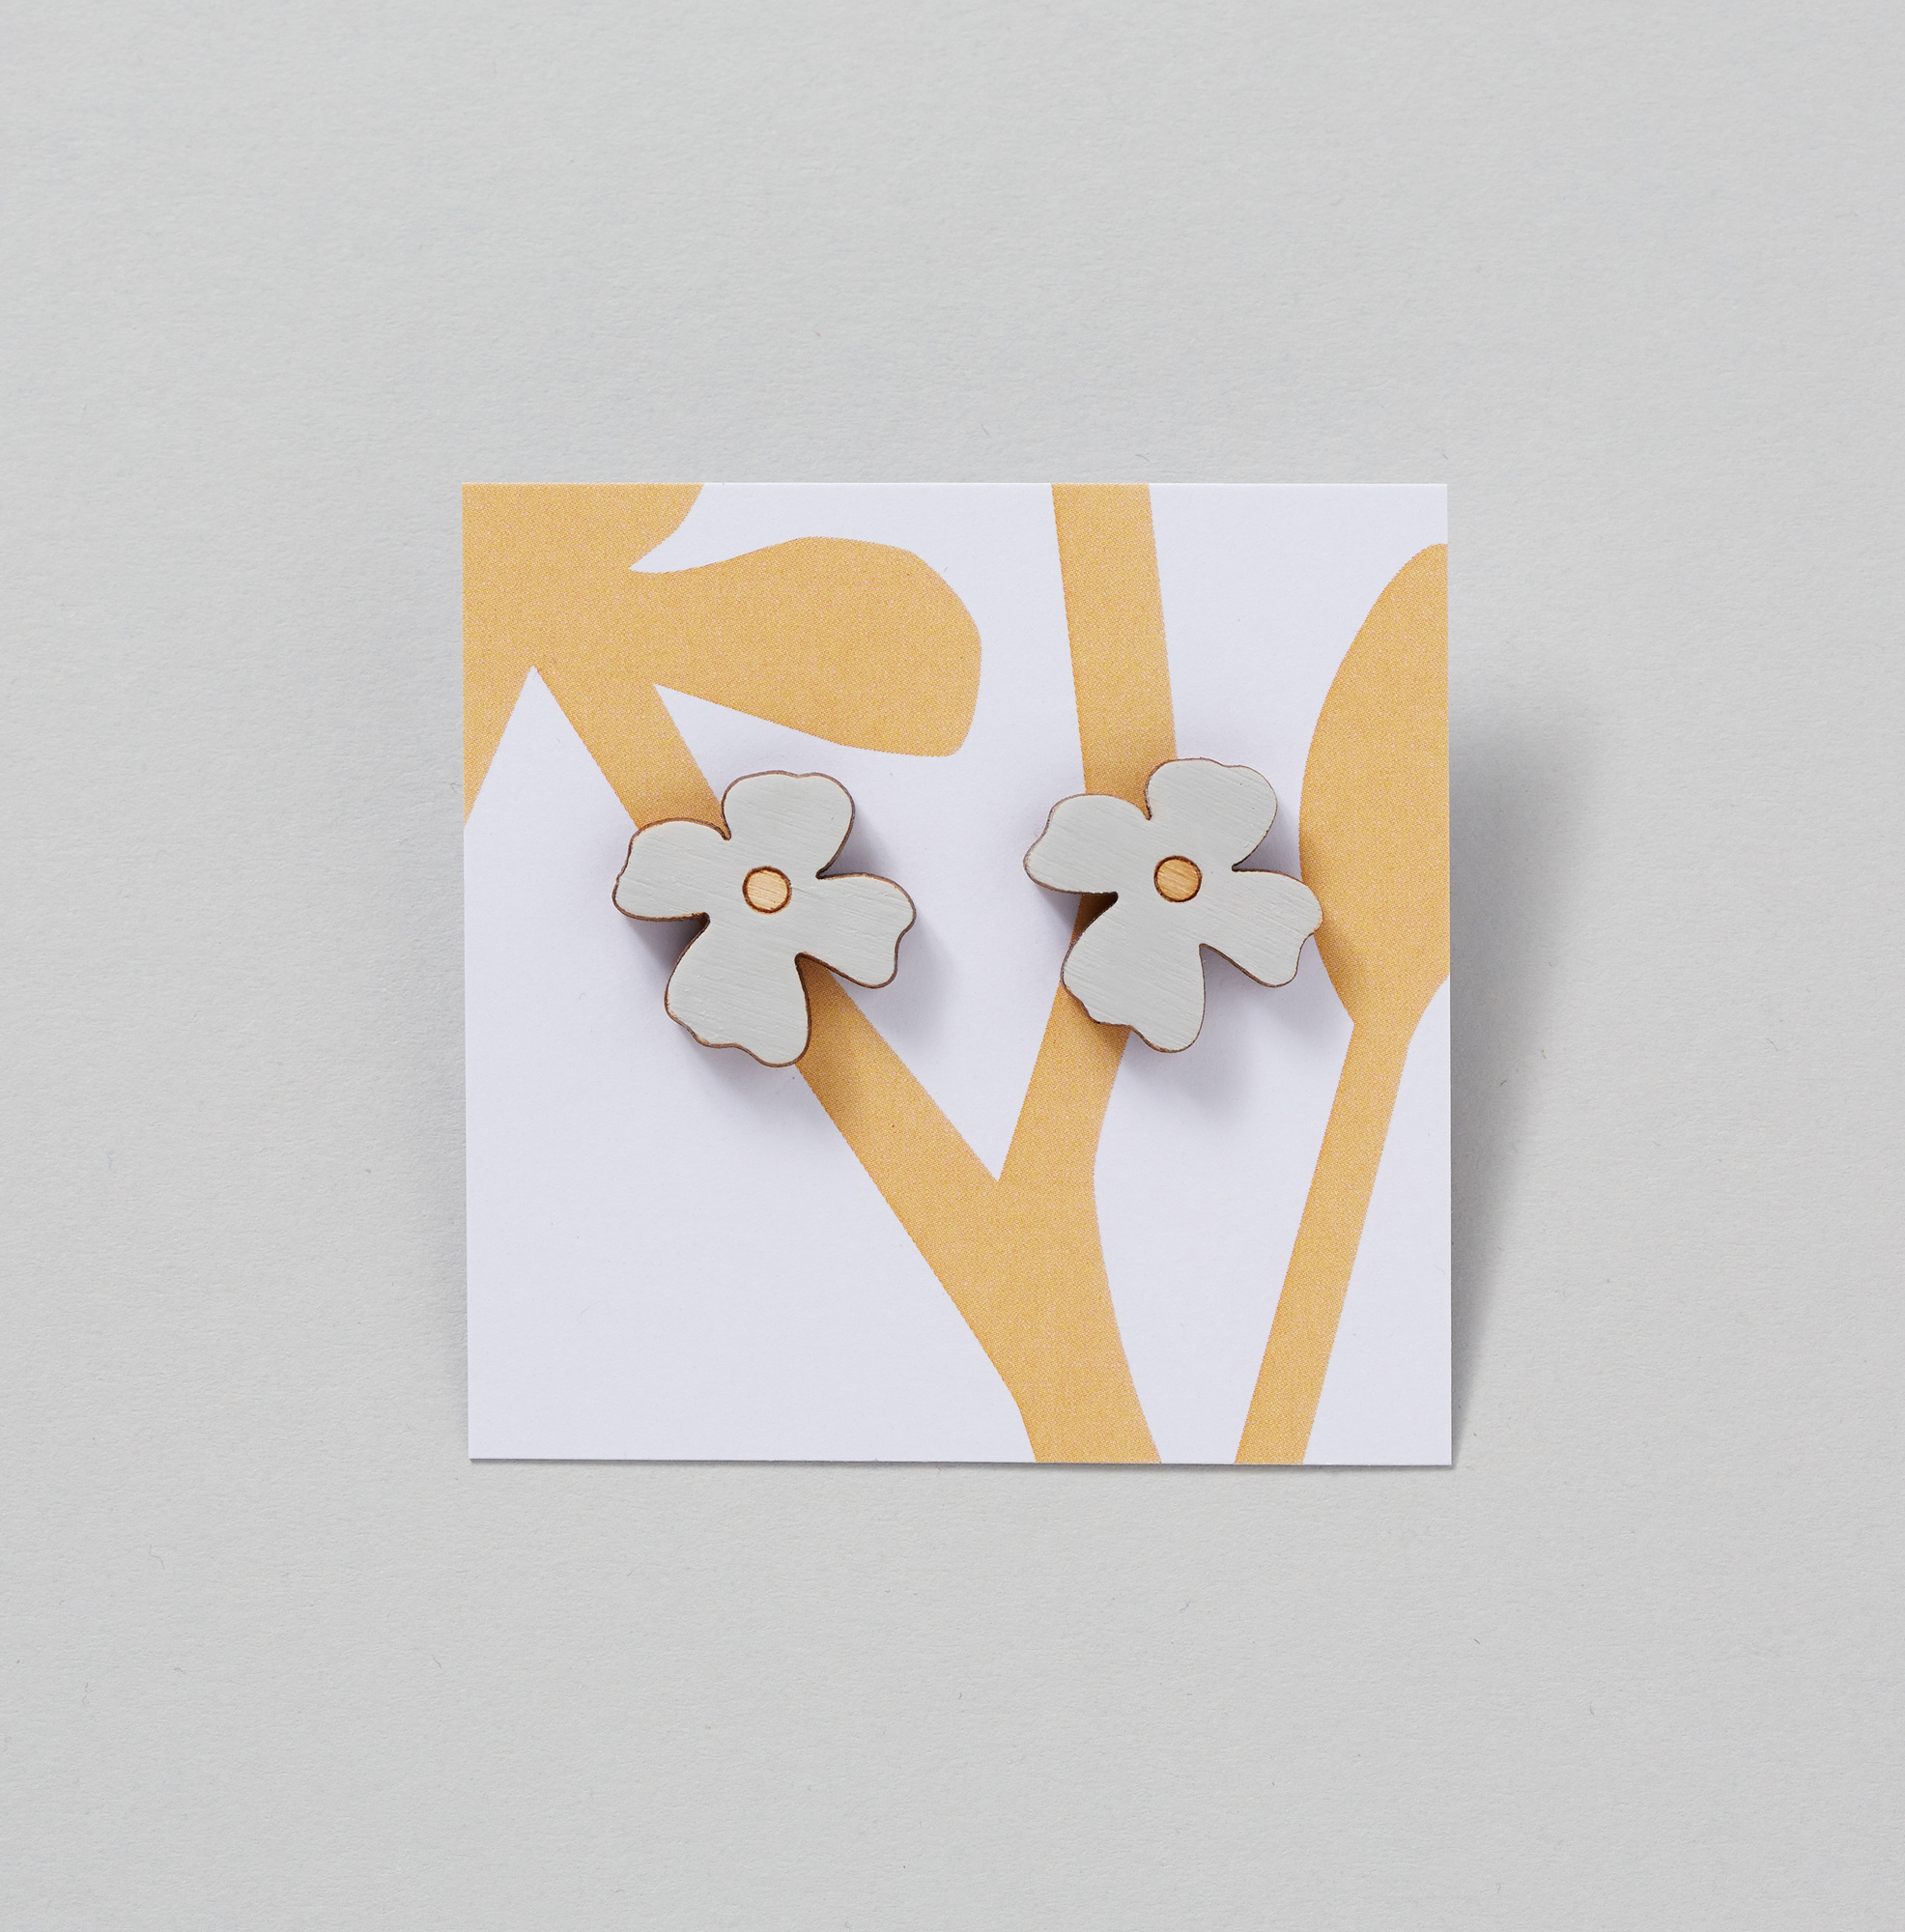 Pretty wooden earrings inspired by British wildflowers - lightweight and easy to wear.